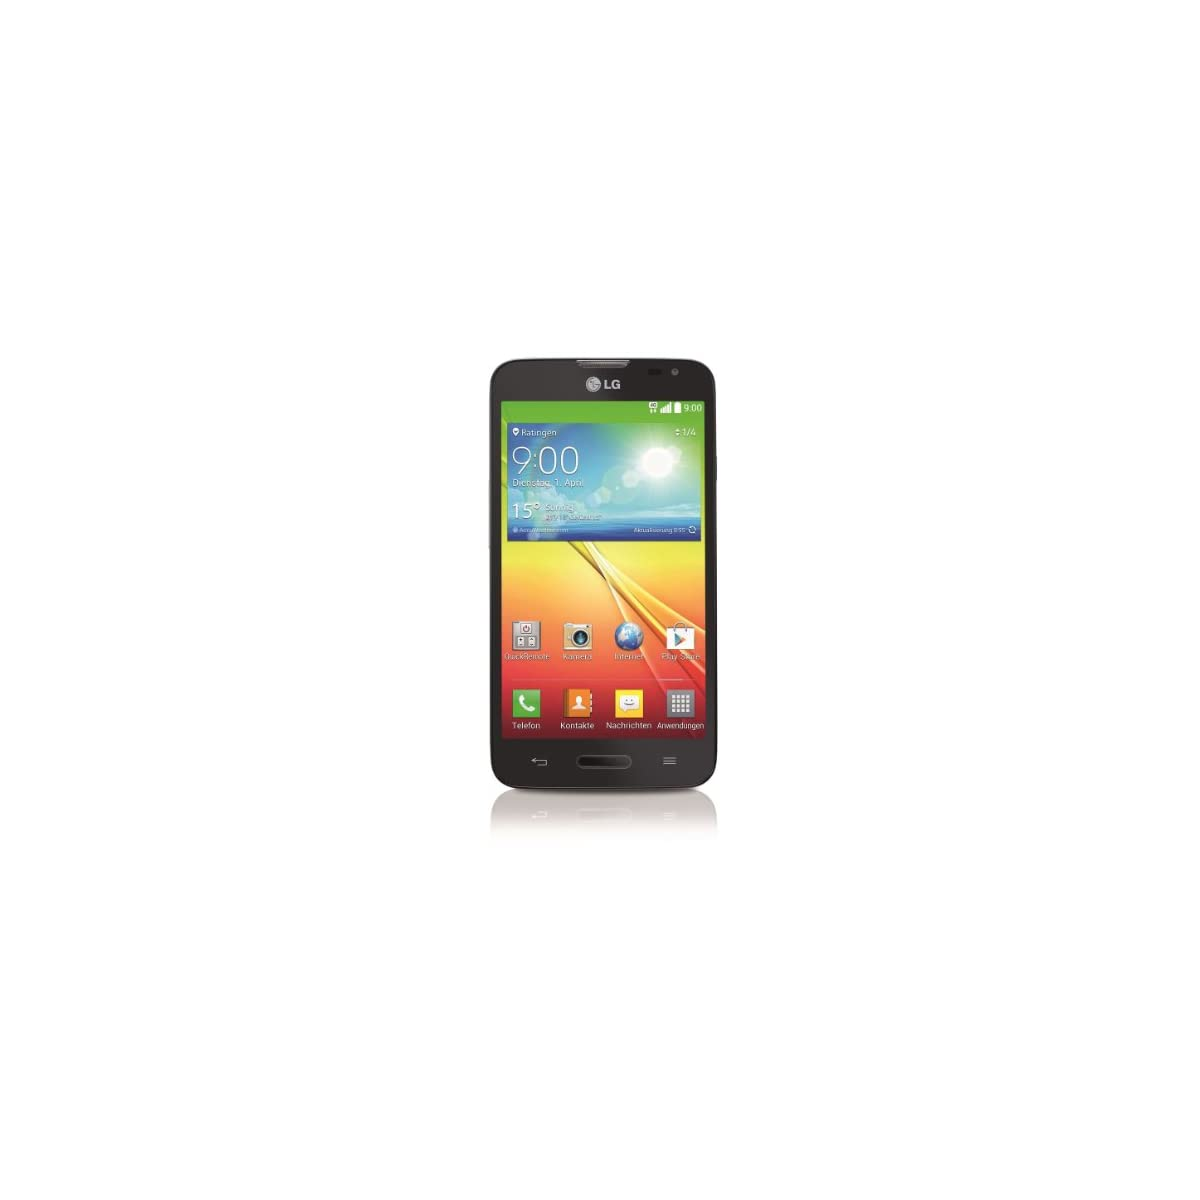 LG GD320 Optimus L70 Smartphone (11,4 cm (4,5 Zoll) Touchscreen, 1GB RAM, 4GB Flash-Speicher, 8 Megapixel Kamera, Android OS)